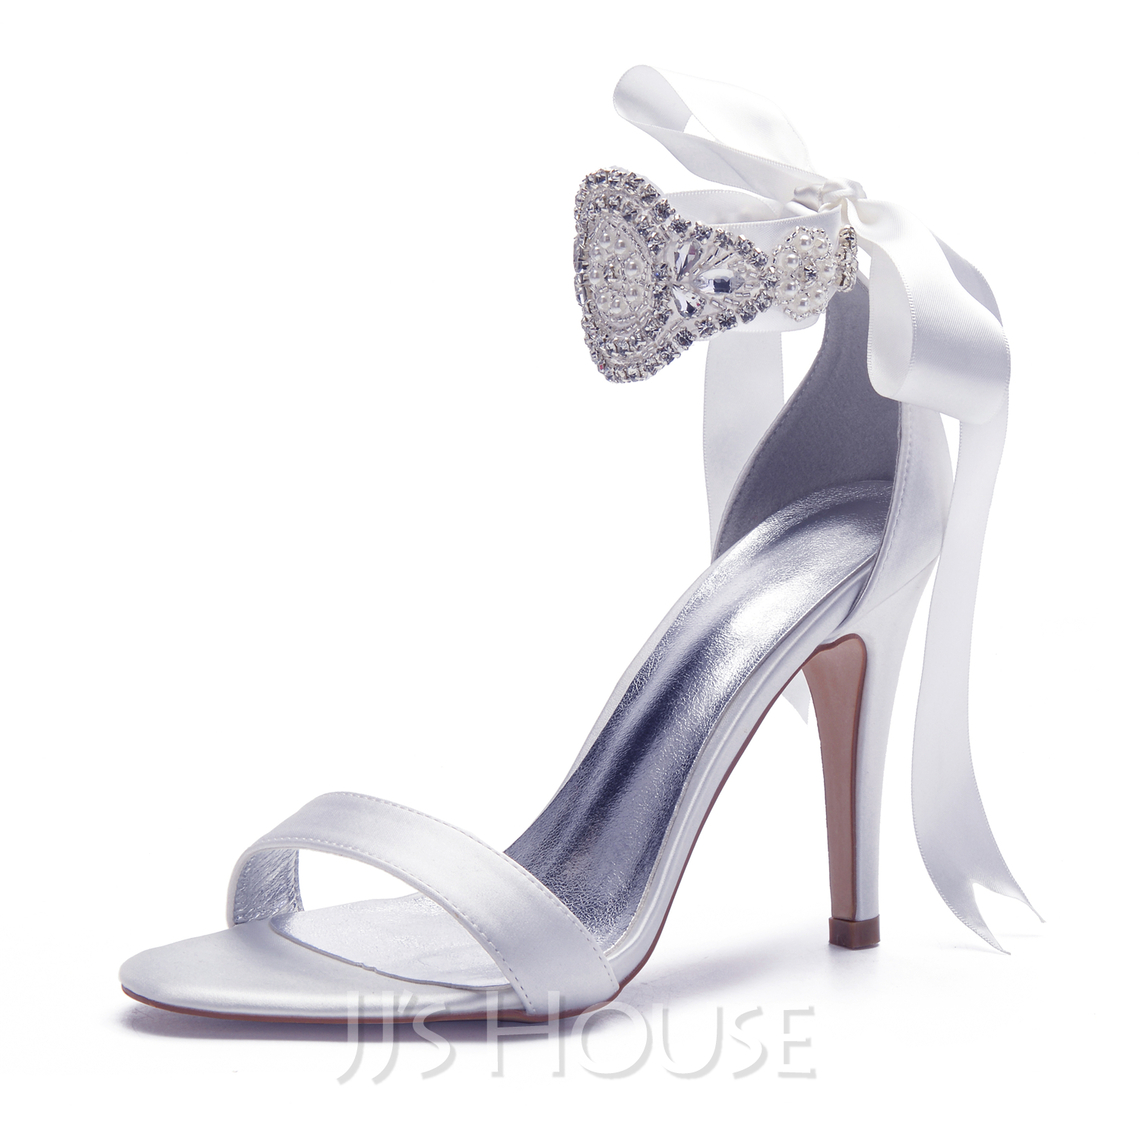 Women's Satin Stiletto Heel Sandals With Bowknot Rhinestone Lace-up